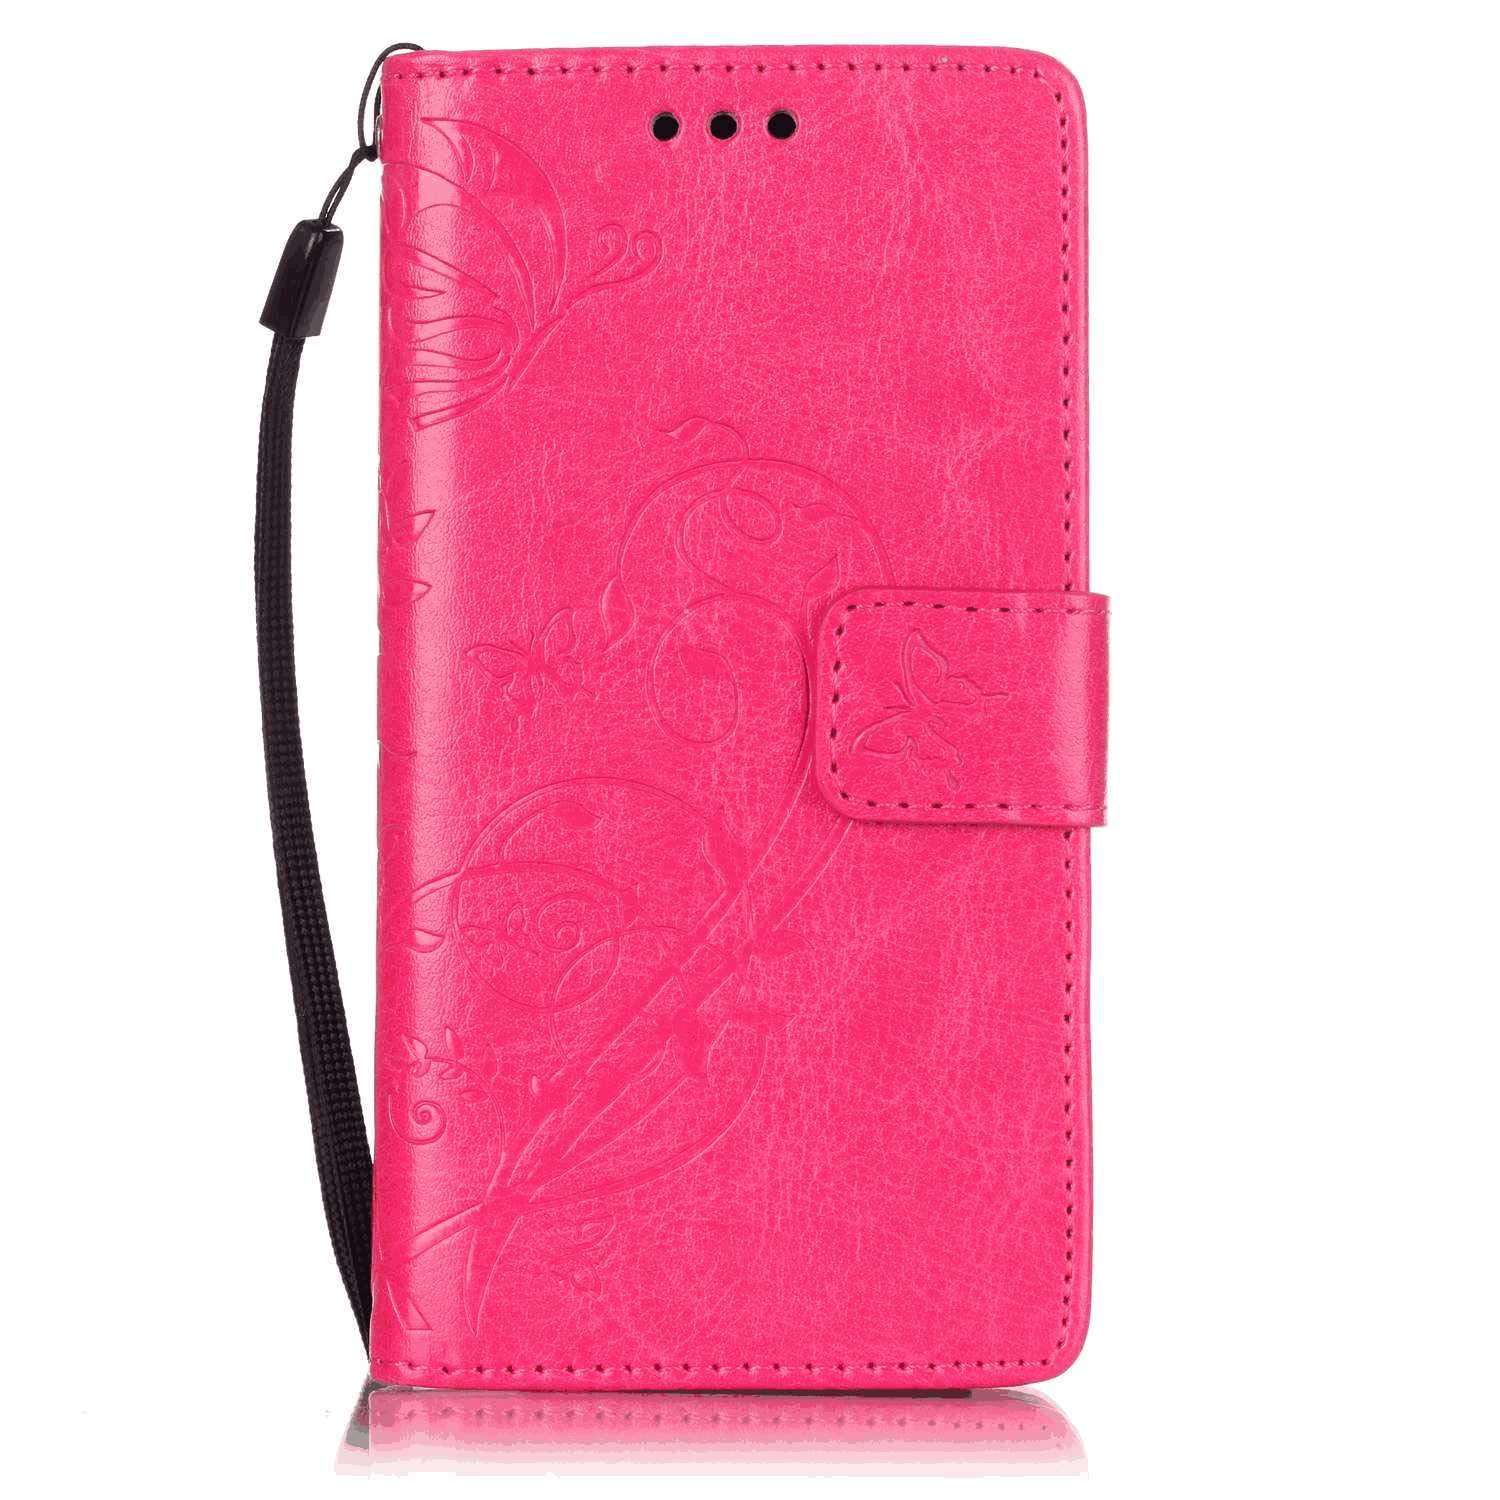 Samsung Galaxy S9 Flip Case, Cover for Leather Extra-Shockproof Business Card Holders Kickstand Wallet case Flip Cover